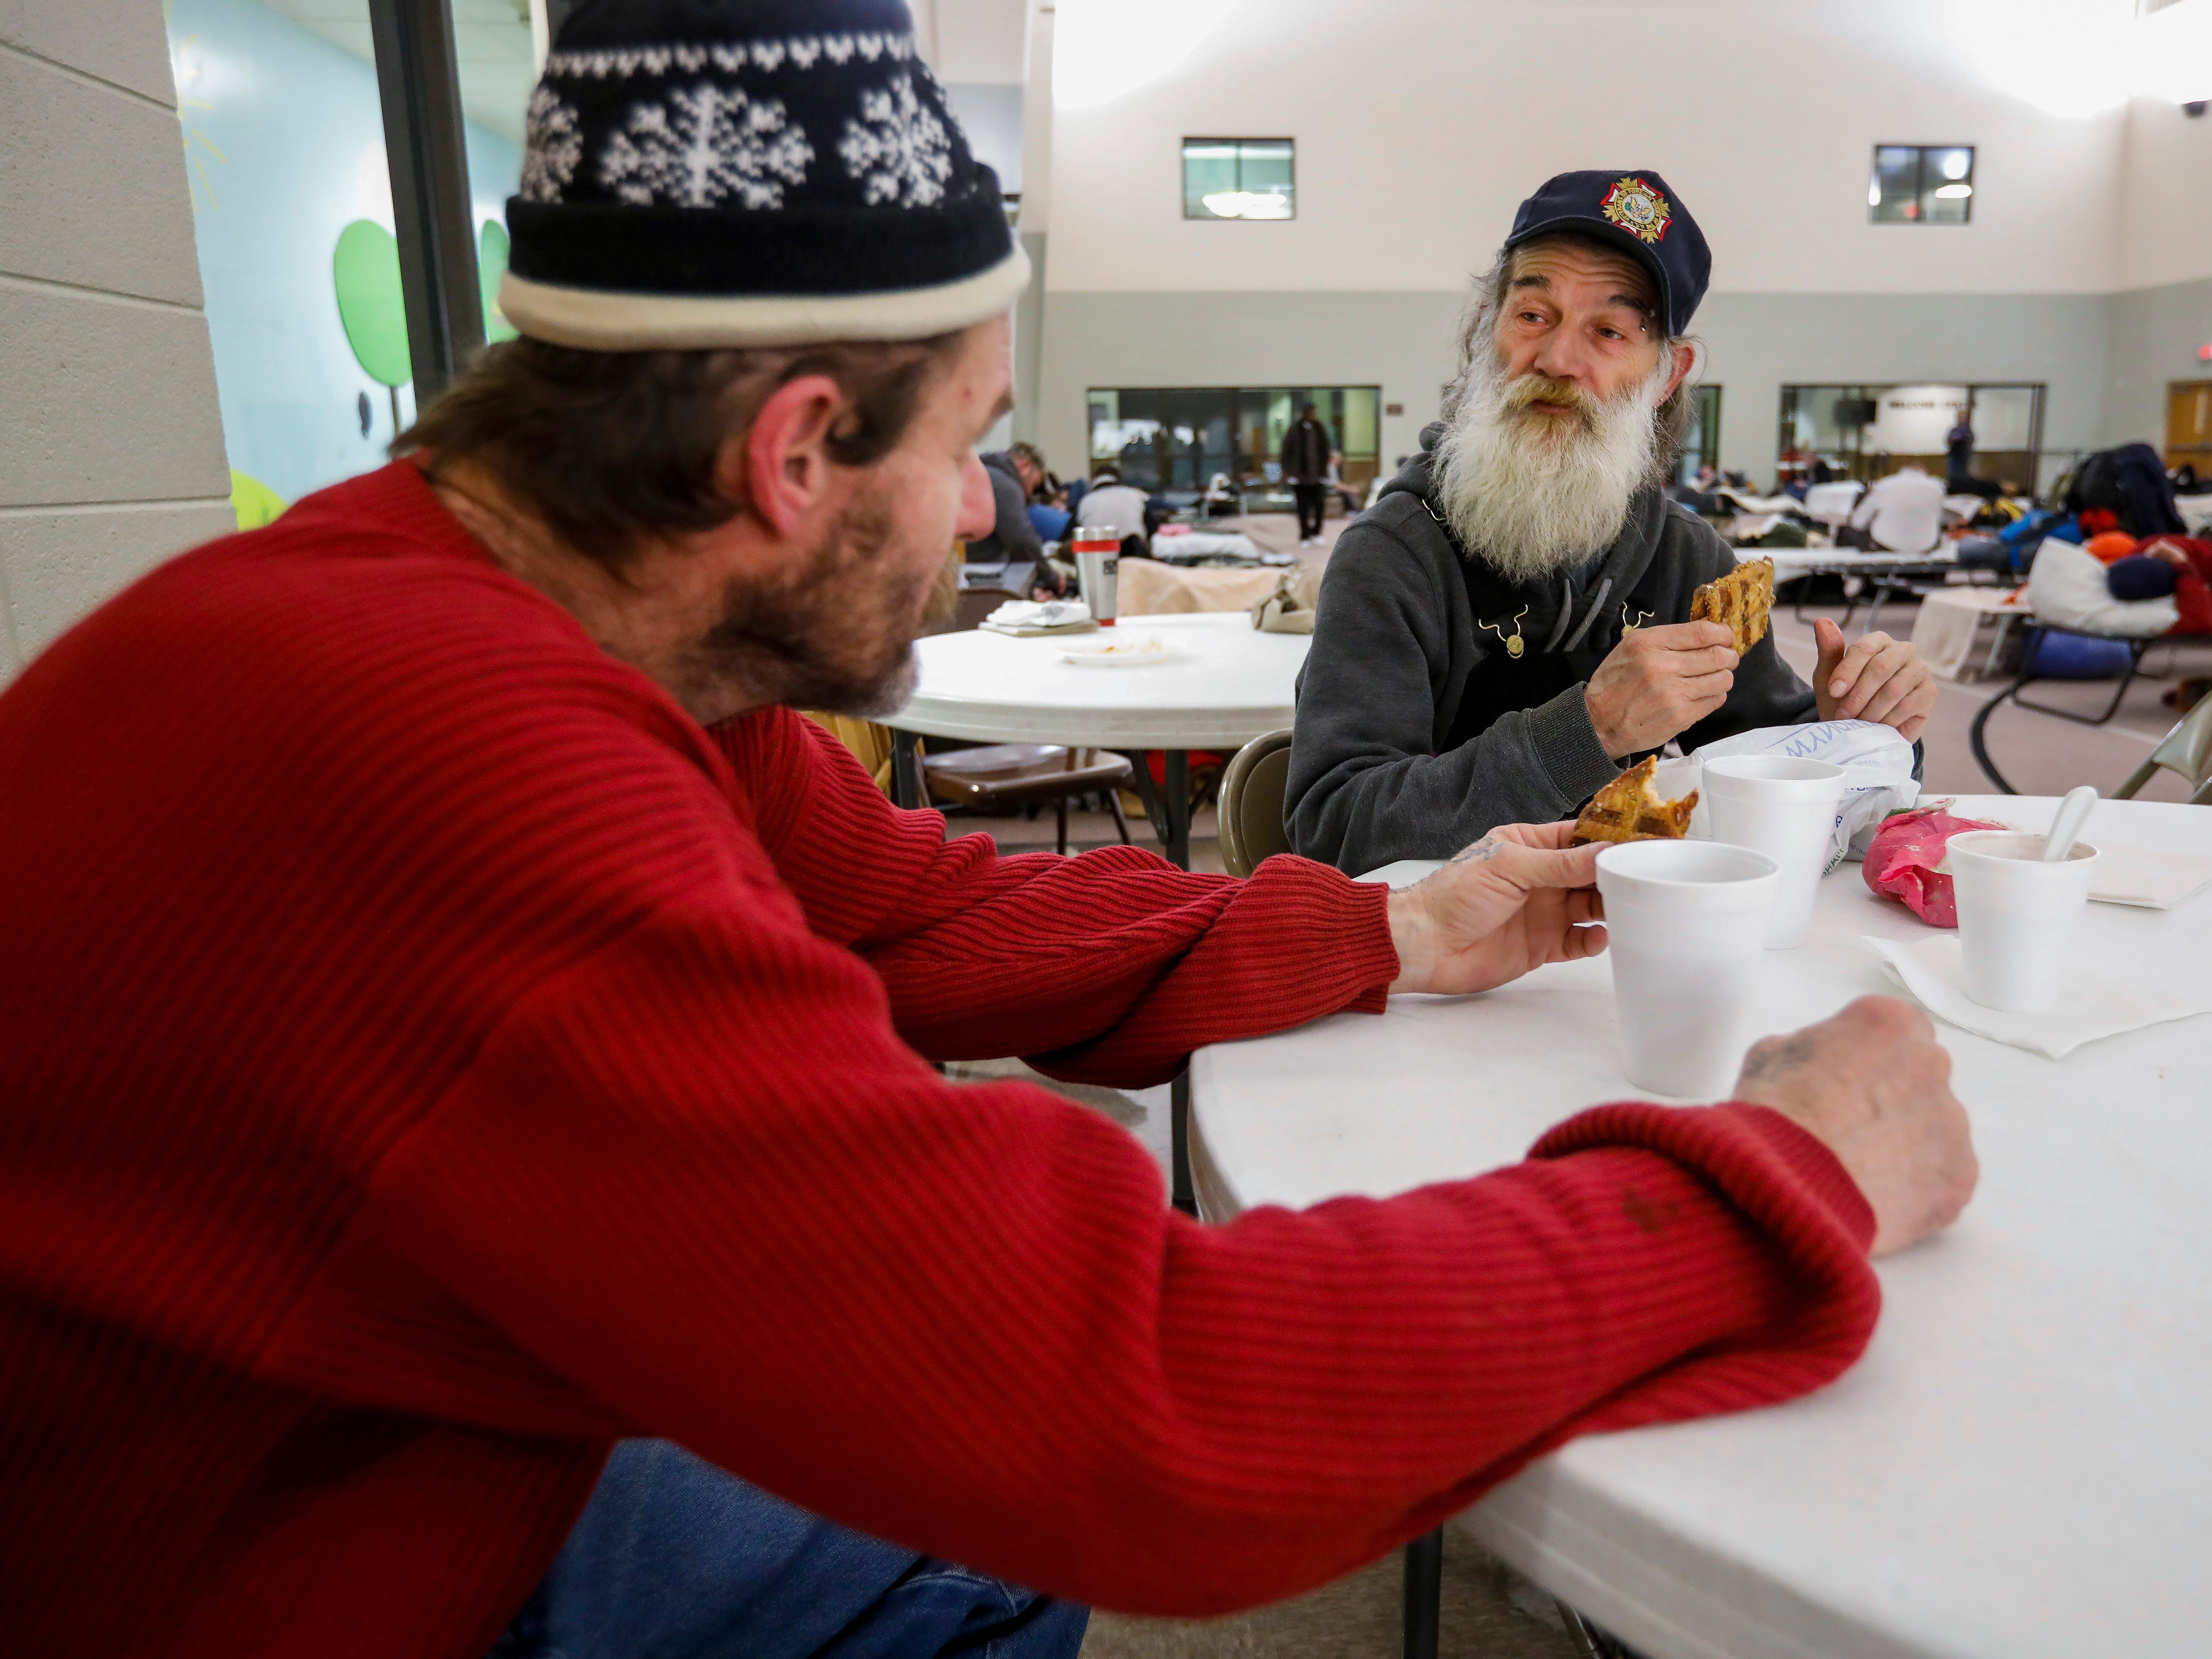 Gil Rife, right, who has been homeless for 3 years, shares some chicken with his friend Tommy (who didn't want to give his last name) at the E. Sunshine Church of Christ on Wednesday, Feb. 20, 2019. Rife was spending the night at the church which opened it's doors as a warming center after temperatures dropped below freezing.